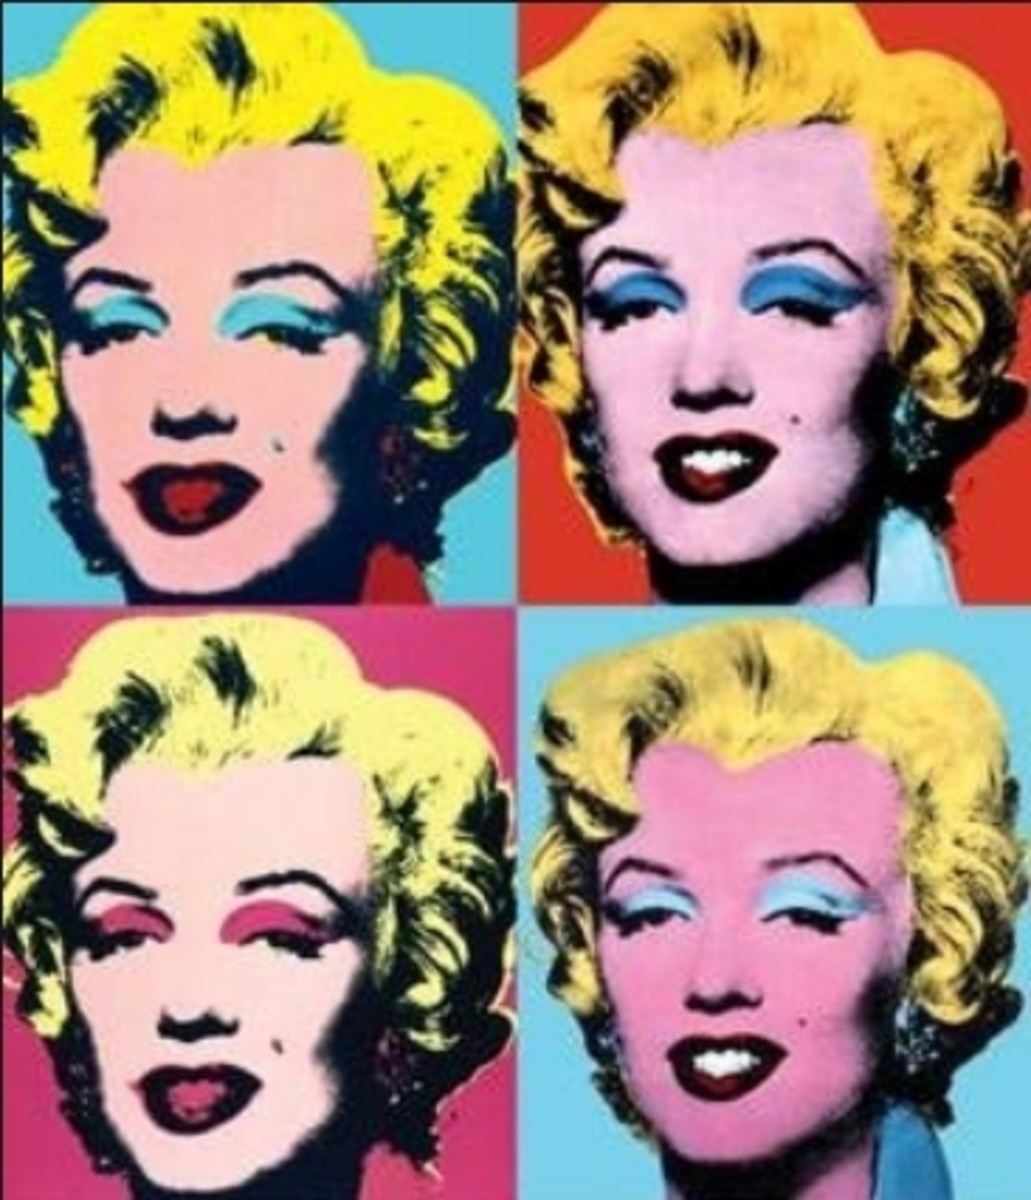 Series of portraits of Marilyn Monroe by Andy Warhol